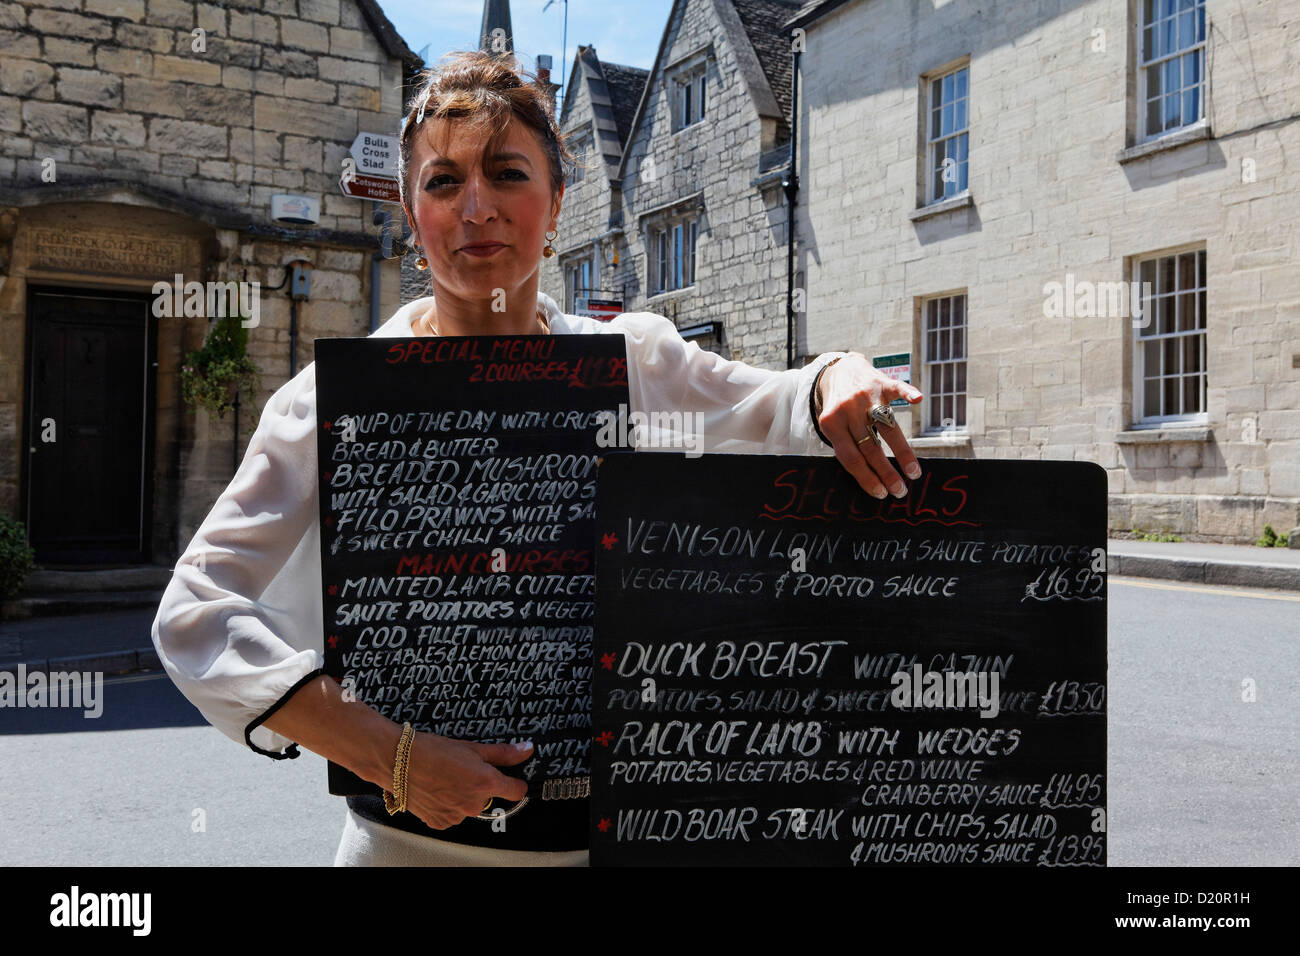 Femme montrant le menu du Pub La Royal Oak, Painswick, Gloucestershire, Cotswolds, en Angleterre, Grande-Bretagne, Photo Stock